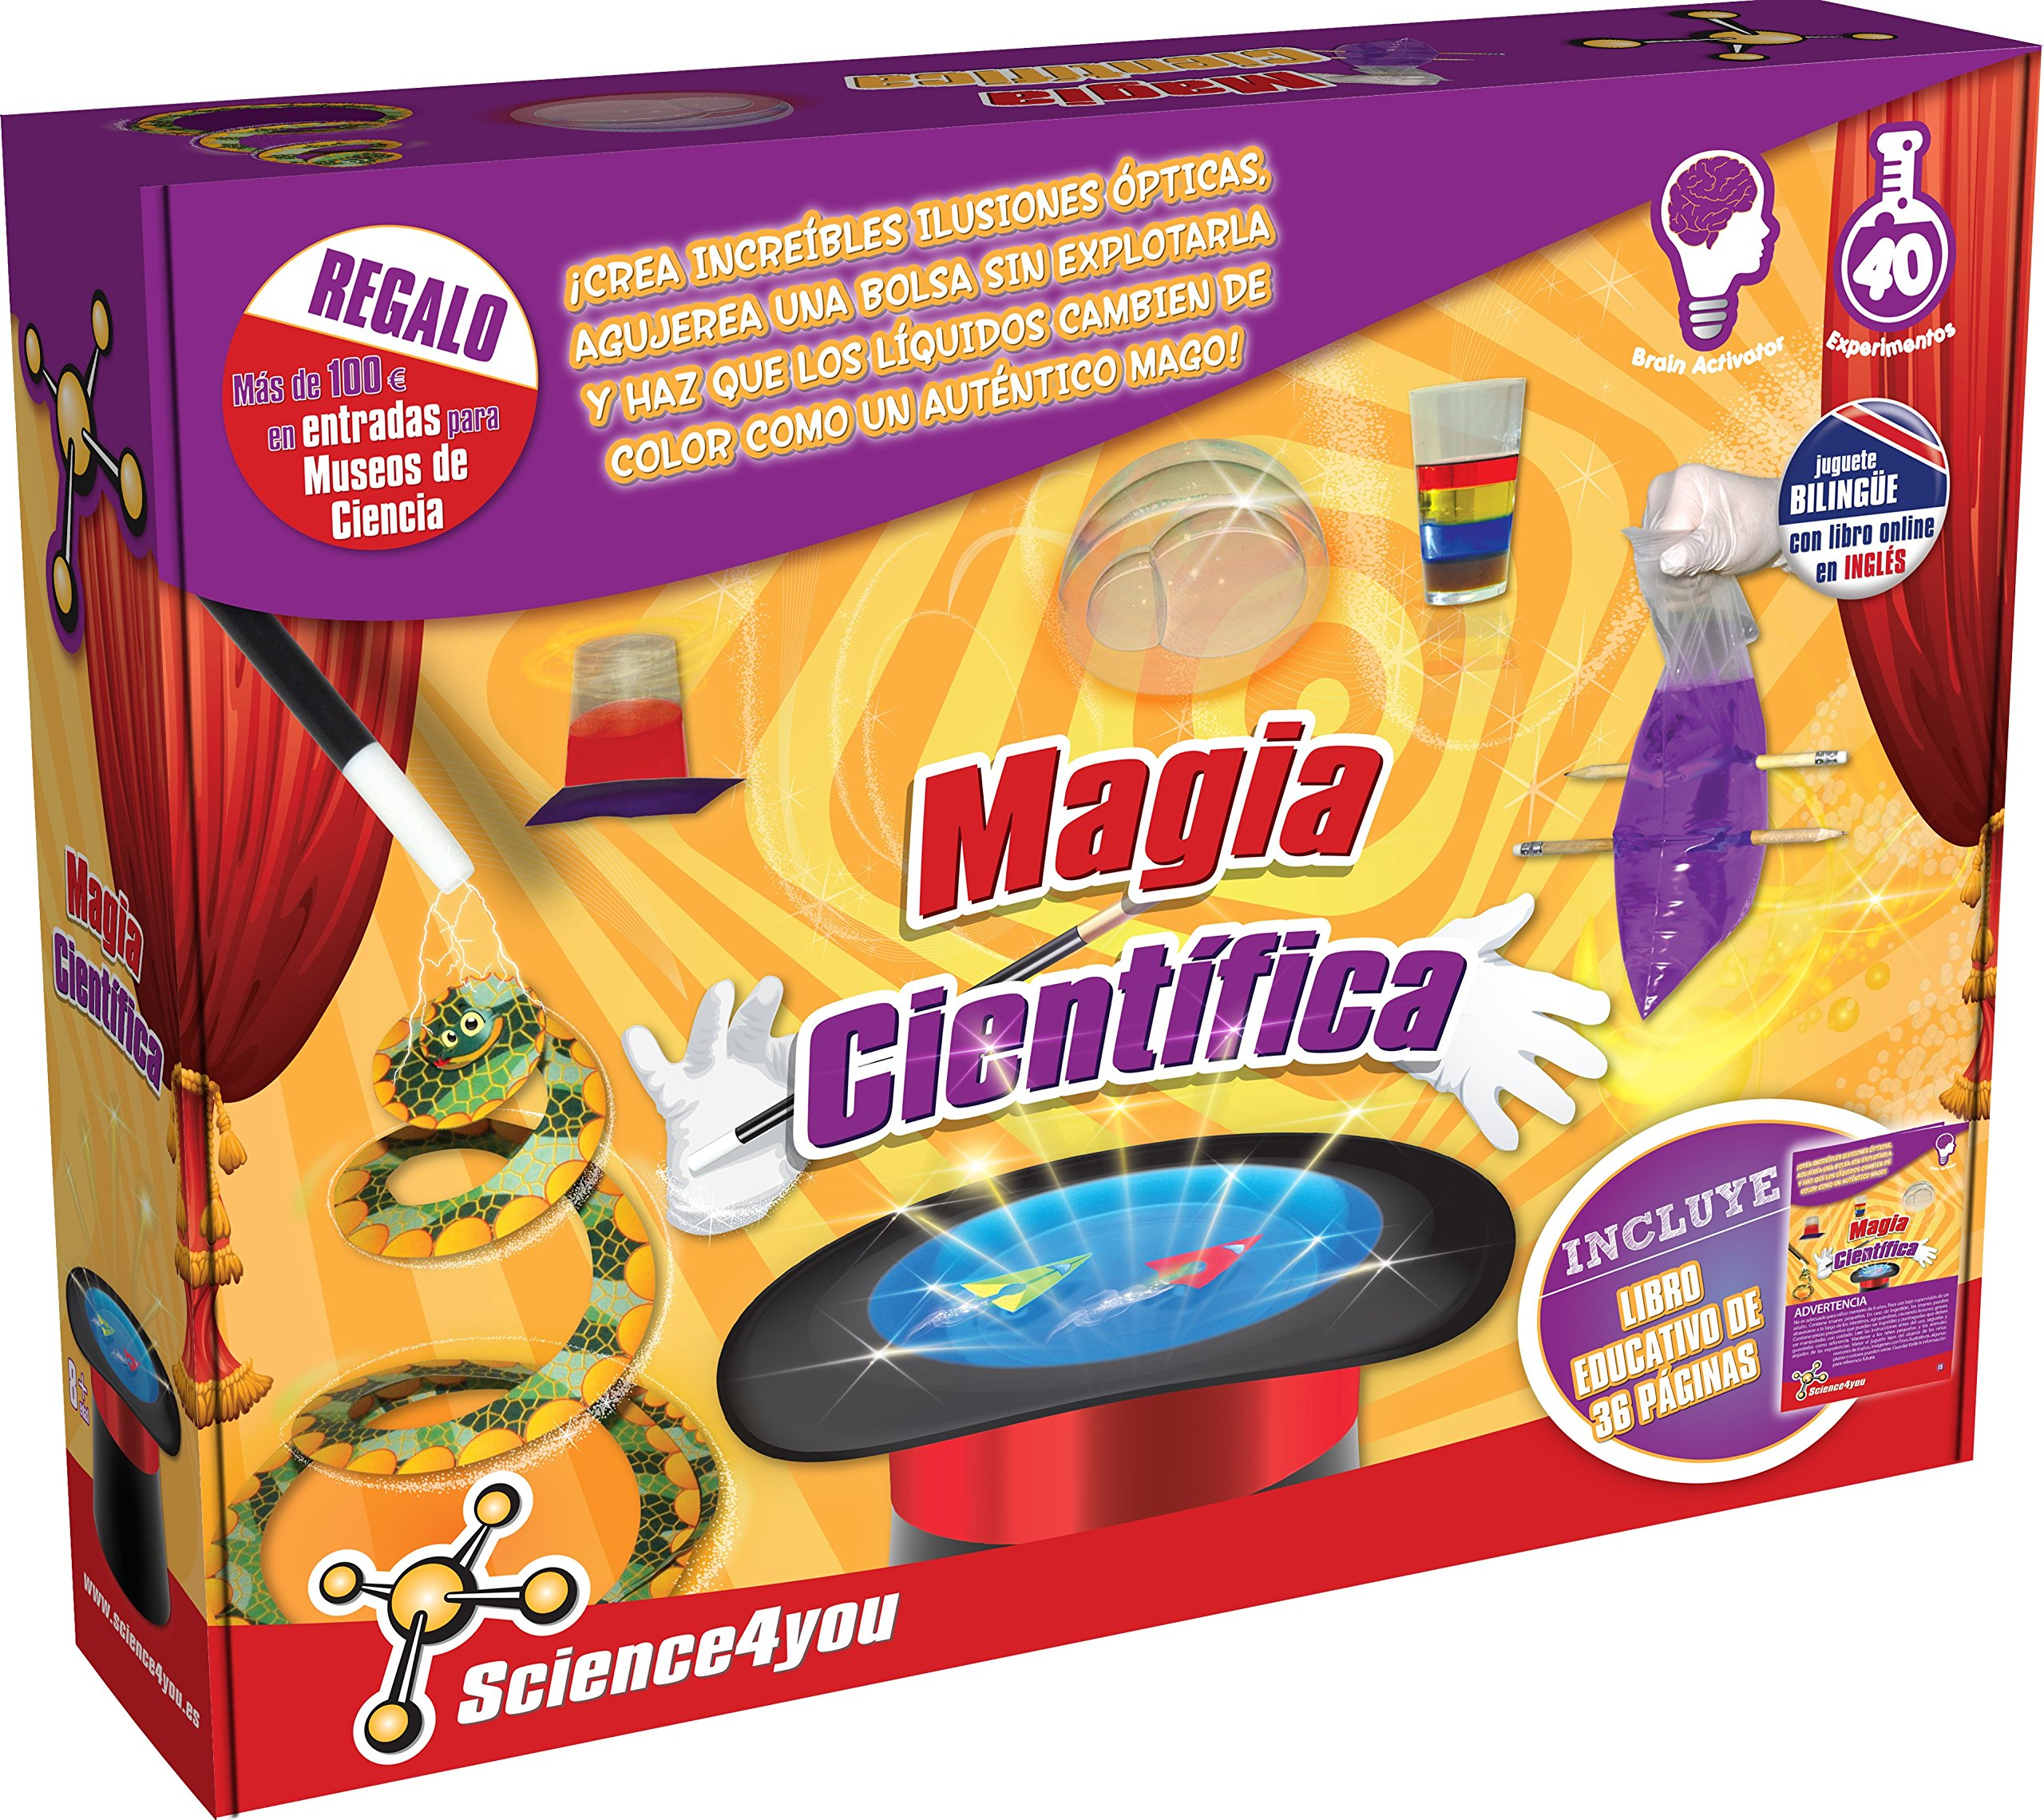 Science4you - Magic with Science - Educational Scientific Toy and Stem